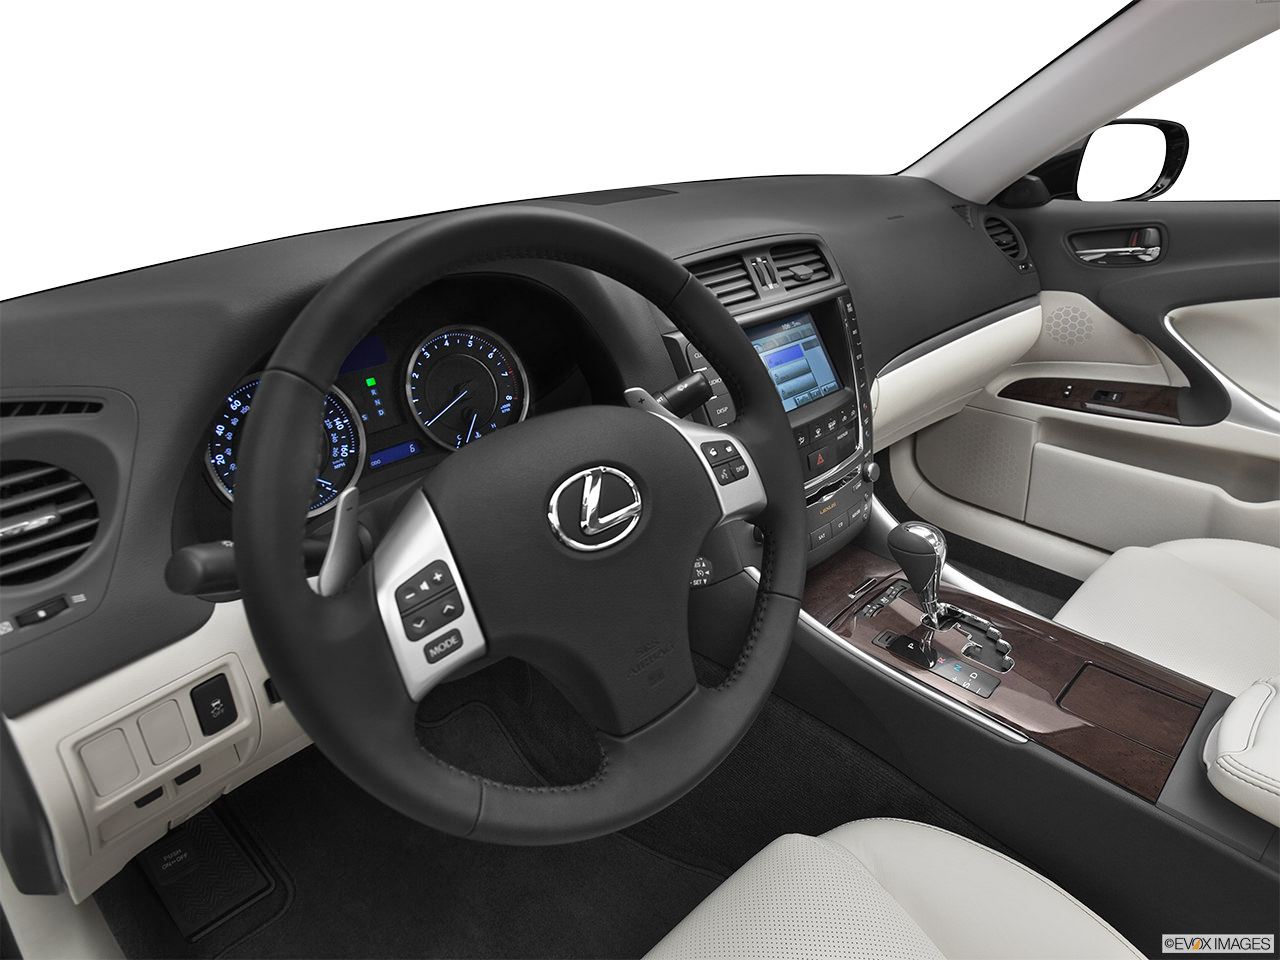 Lexus IS 2012 Interior